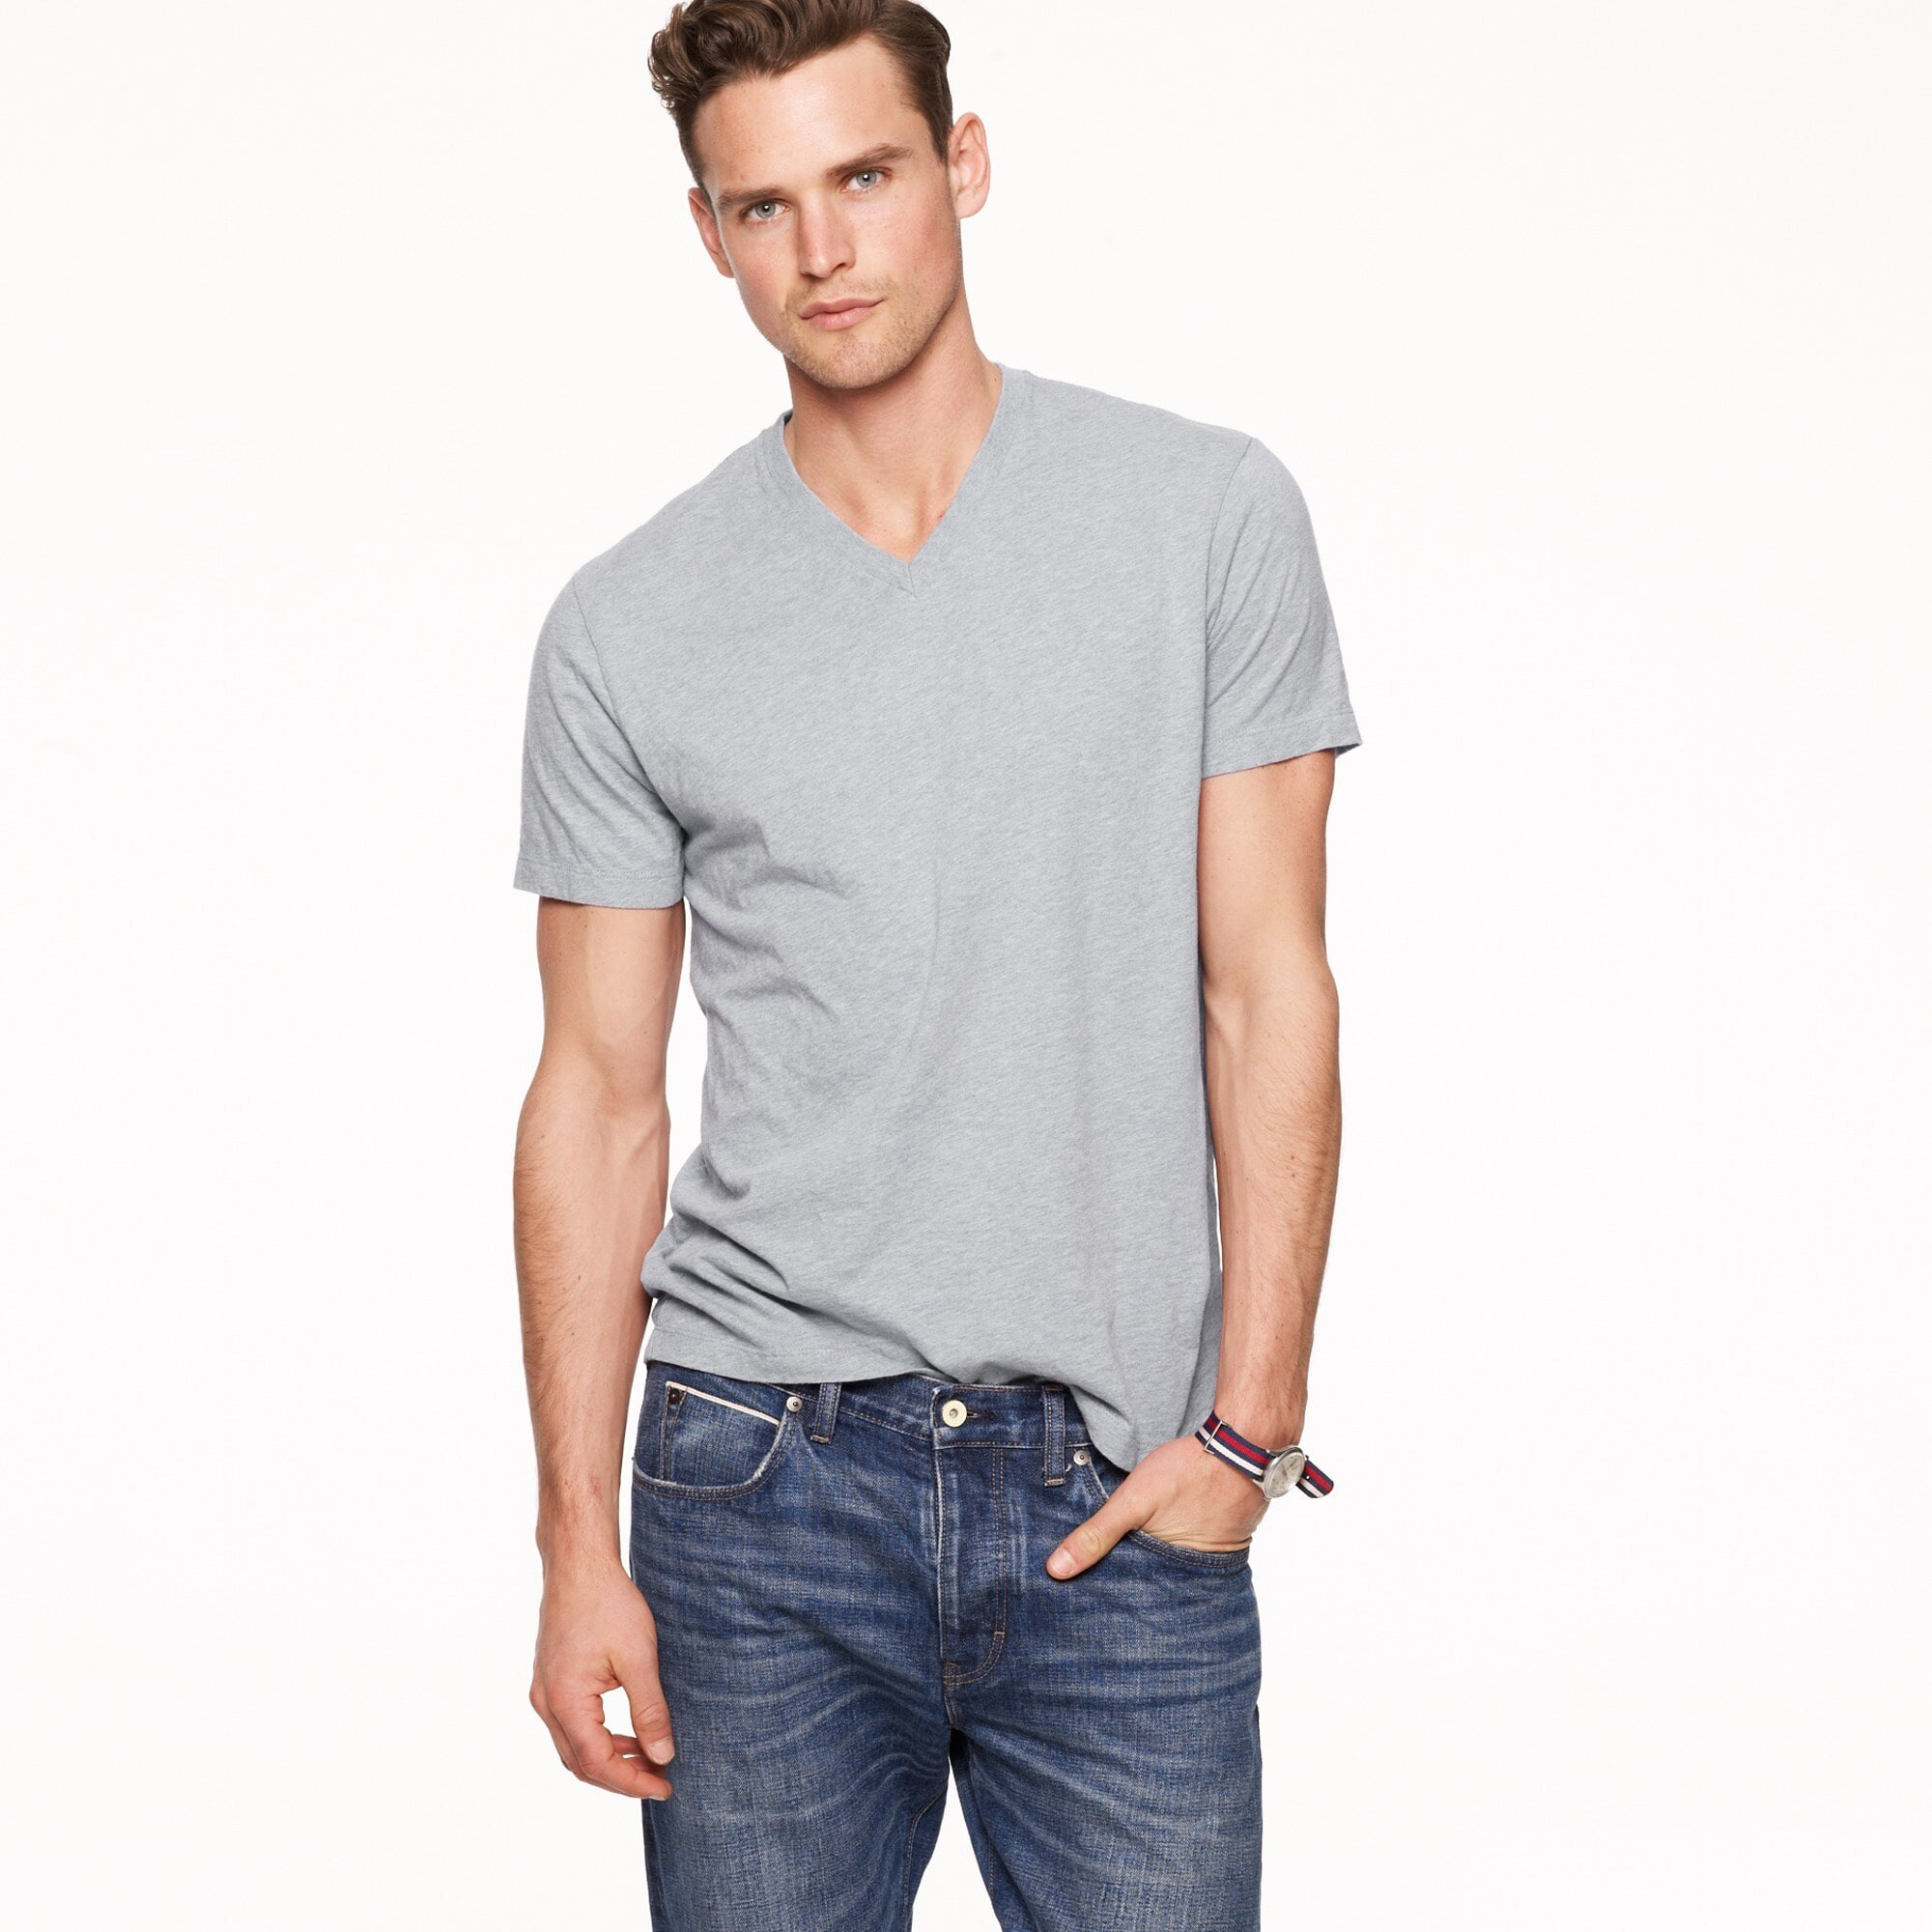 Slim J.Crew Mercantile Broken-in V-neck T-shirt in heather grey